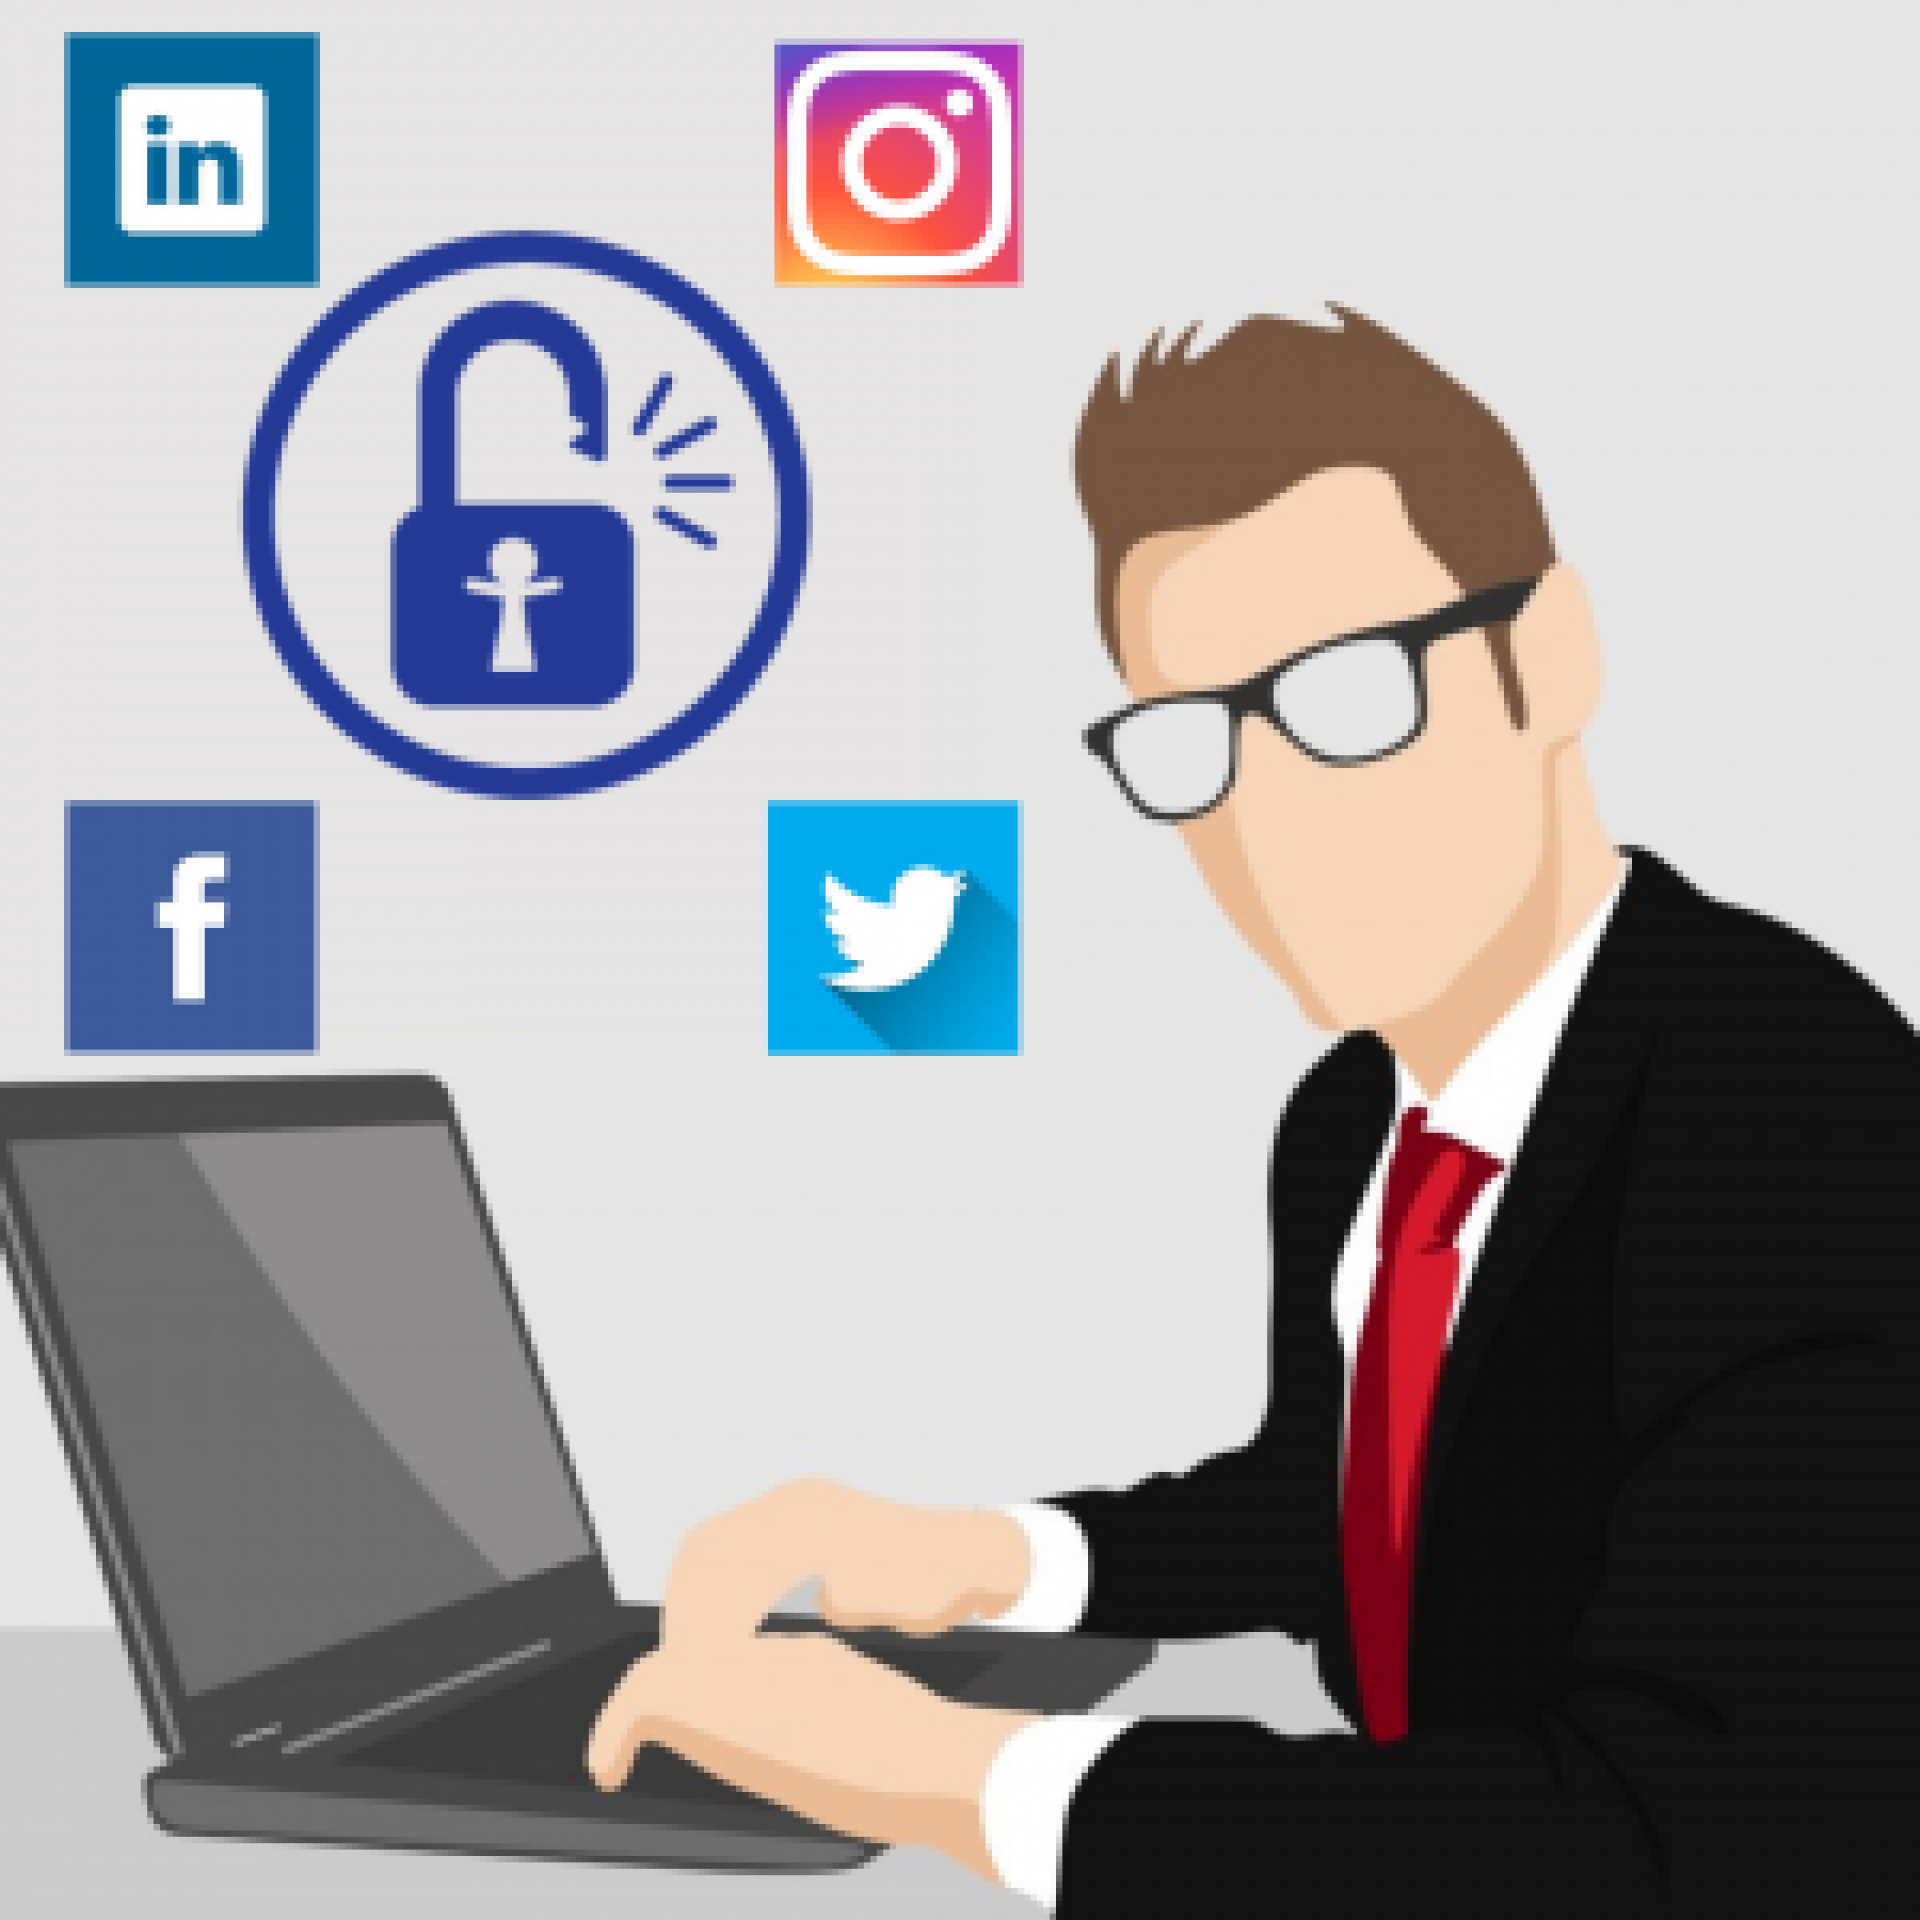 graphic of man using laptop computer with social media icon balloons